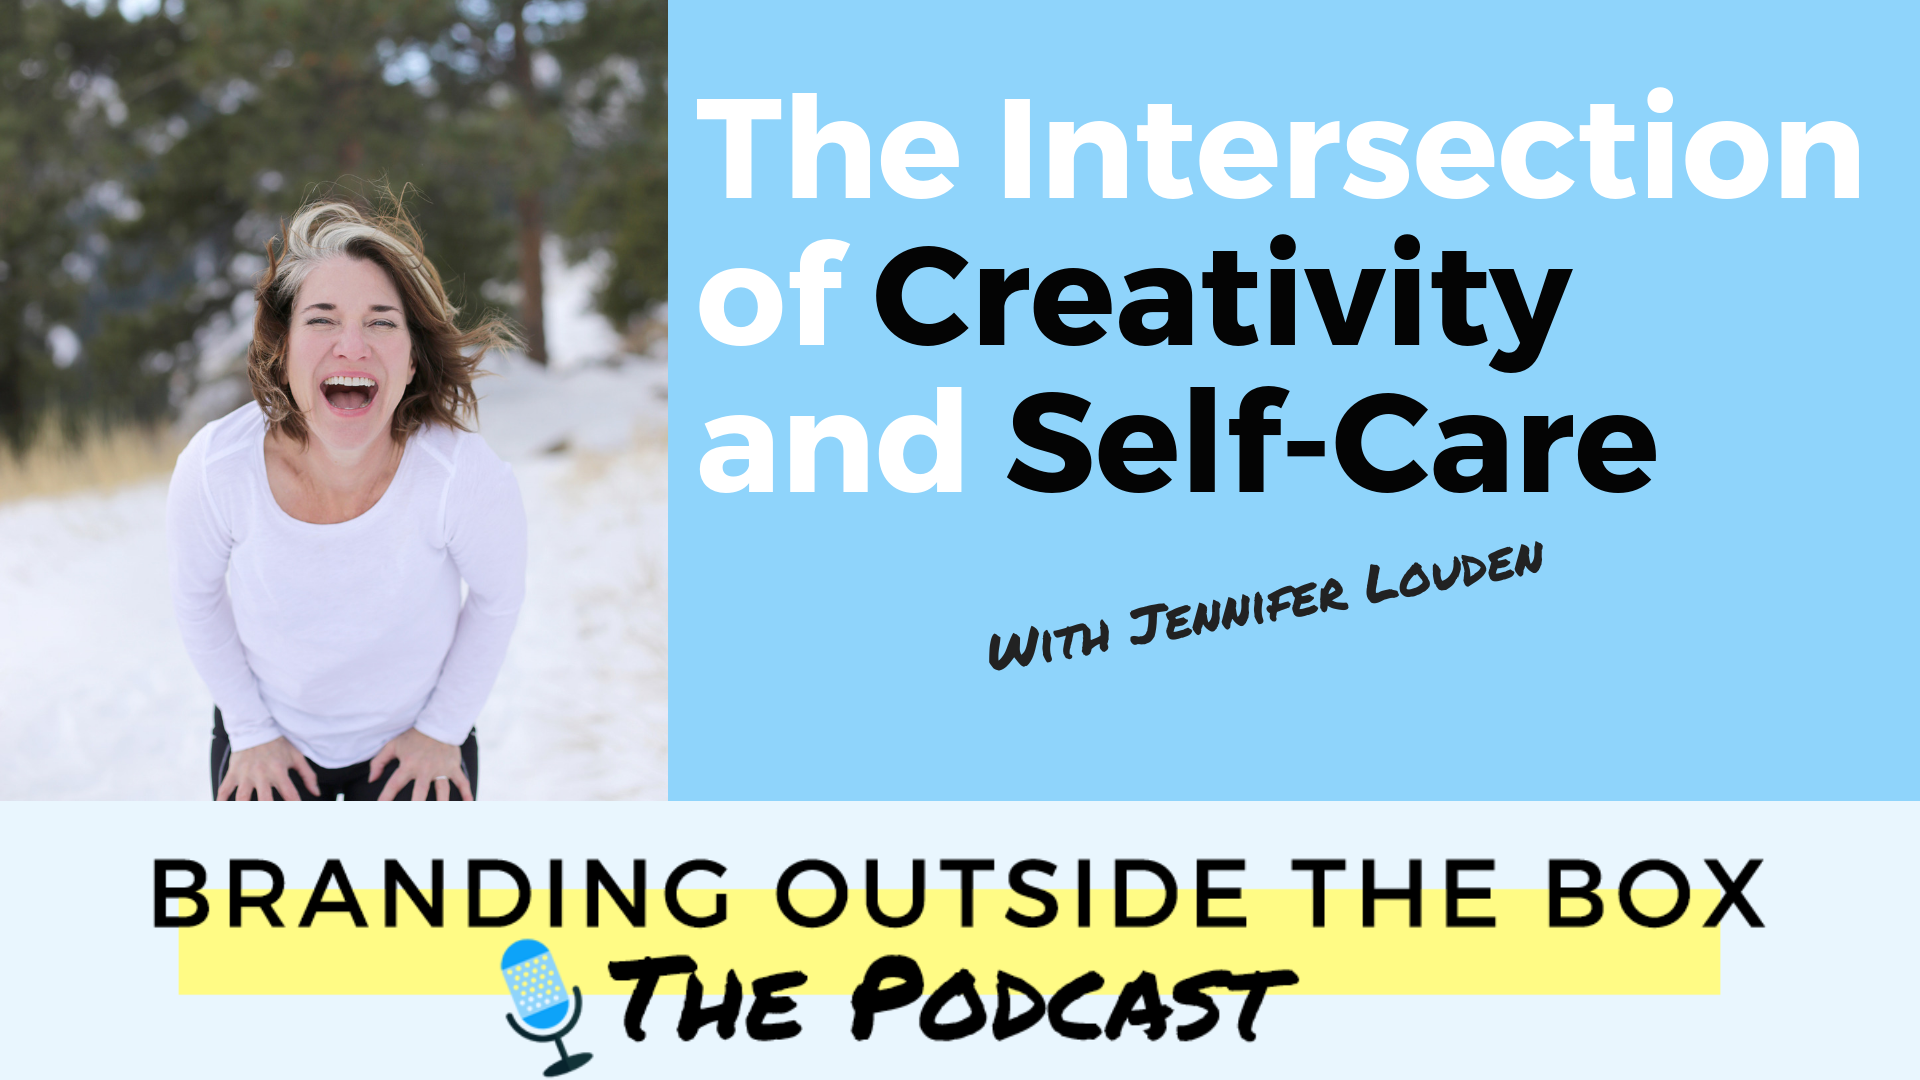 The Intersection of Self-Care and Creativity